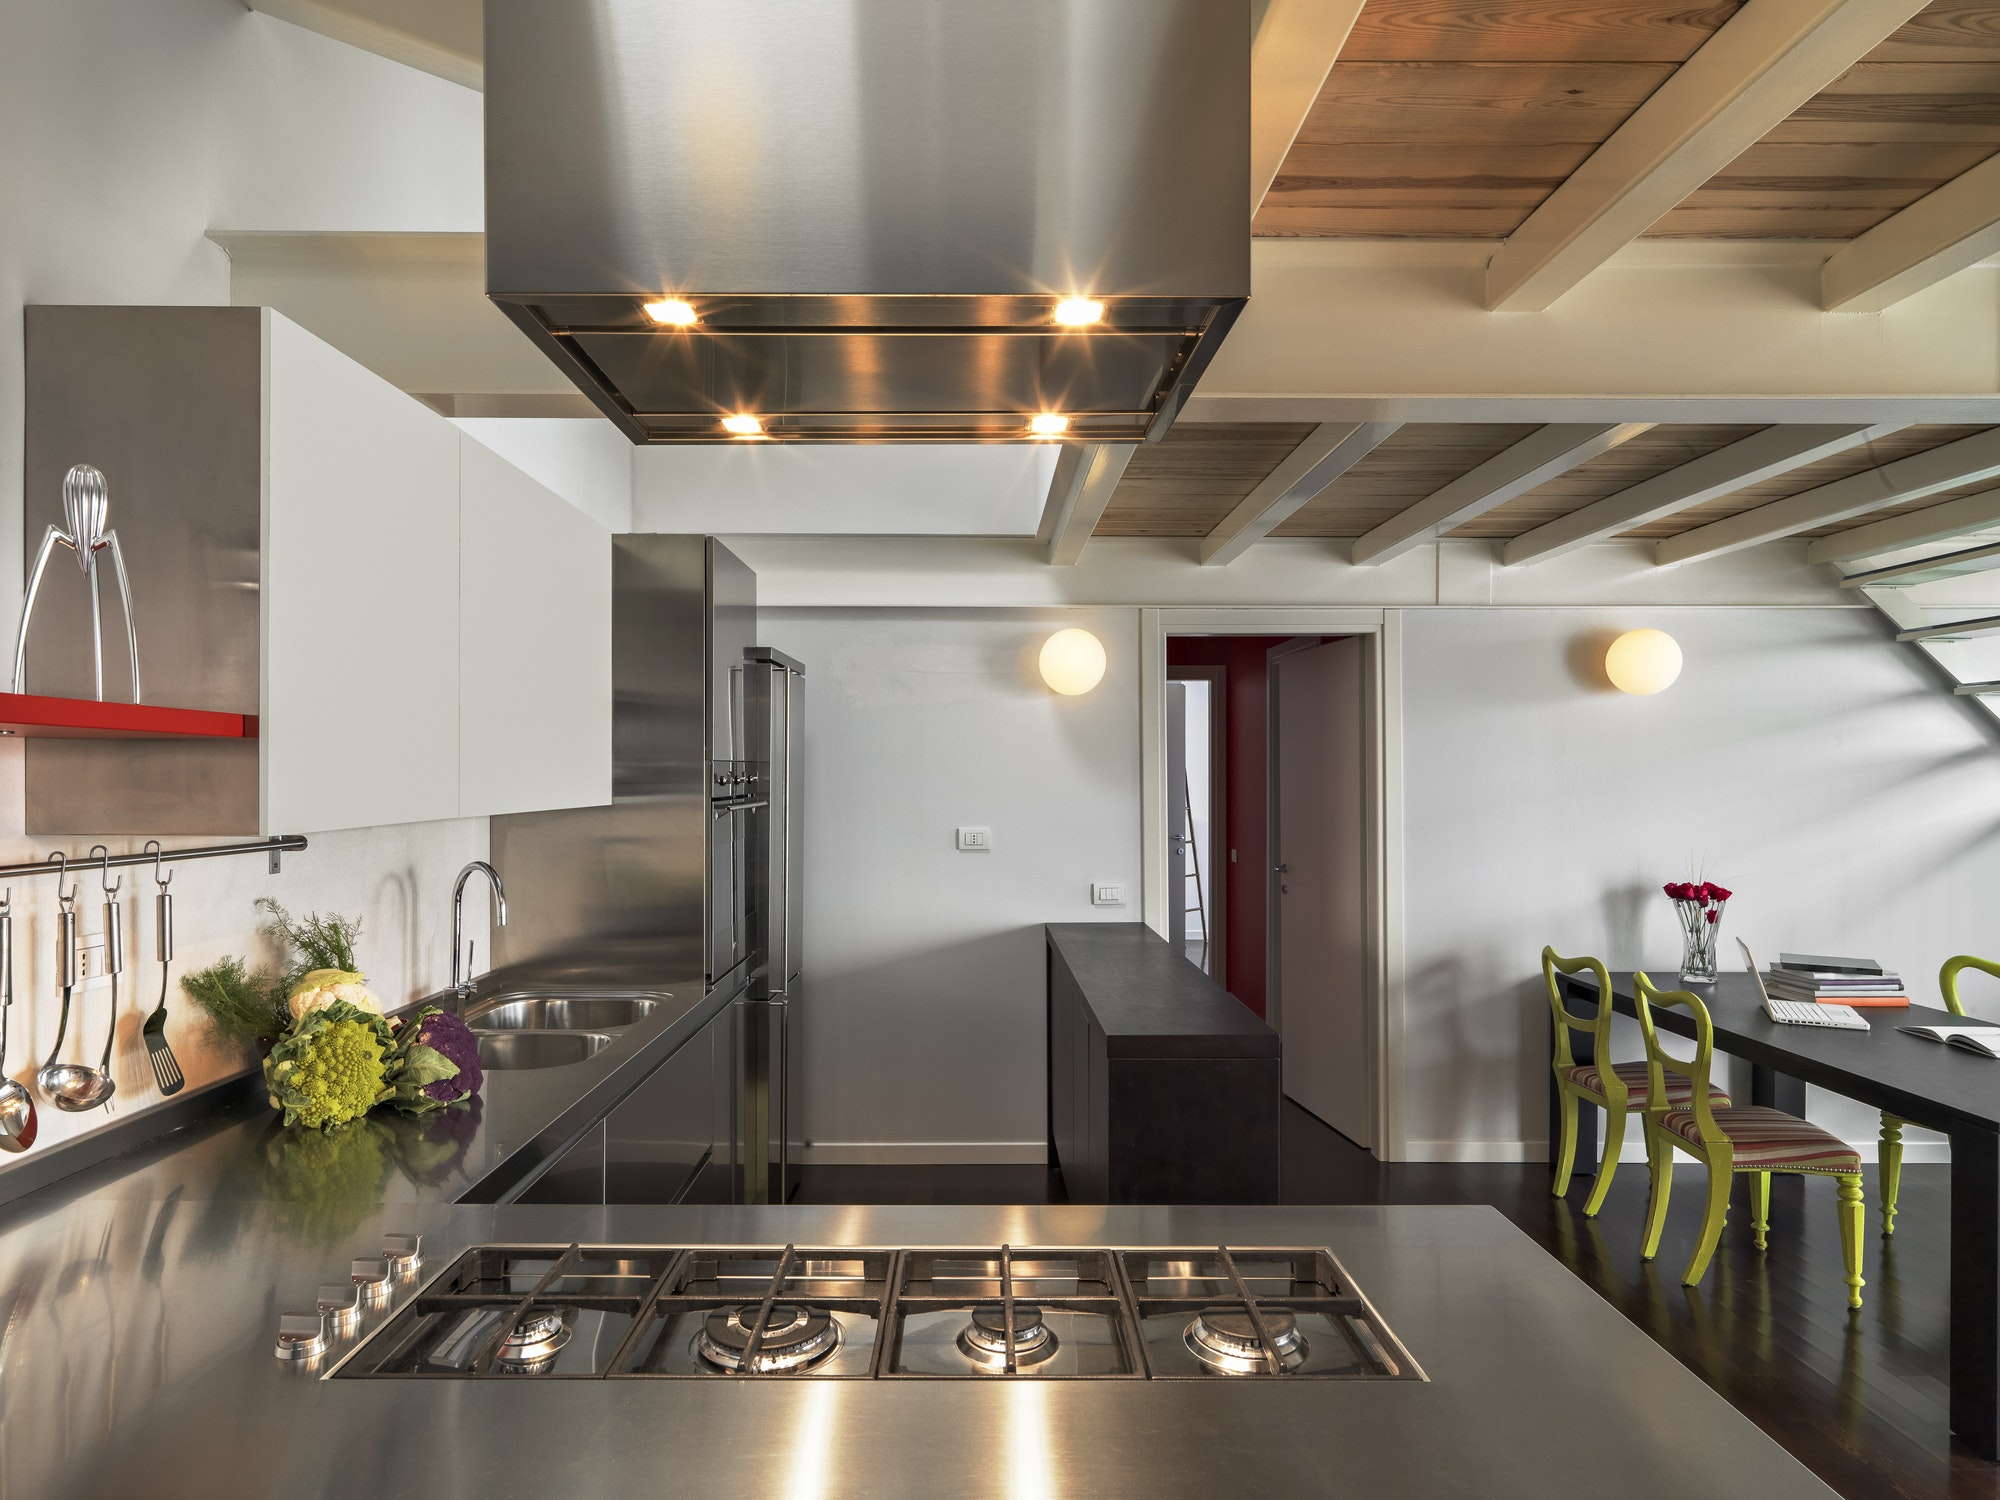 Interior of a Kitchen in a Modern Penthouse